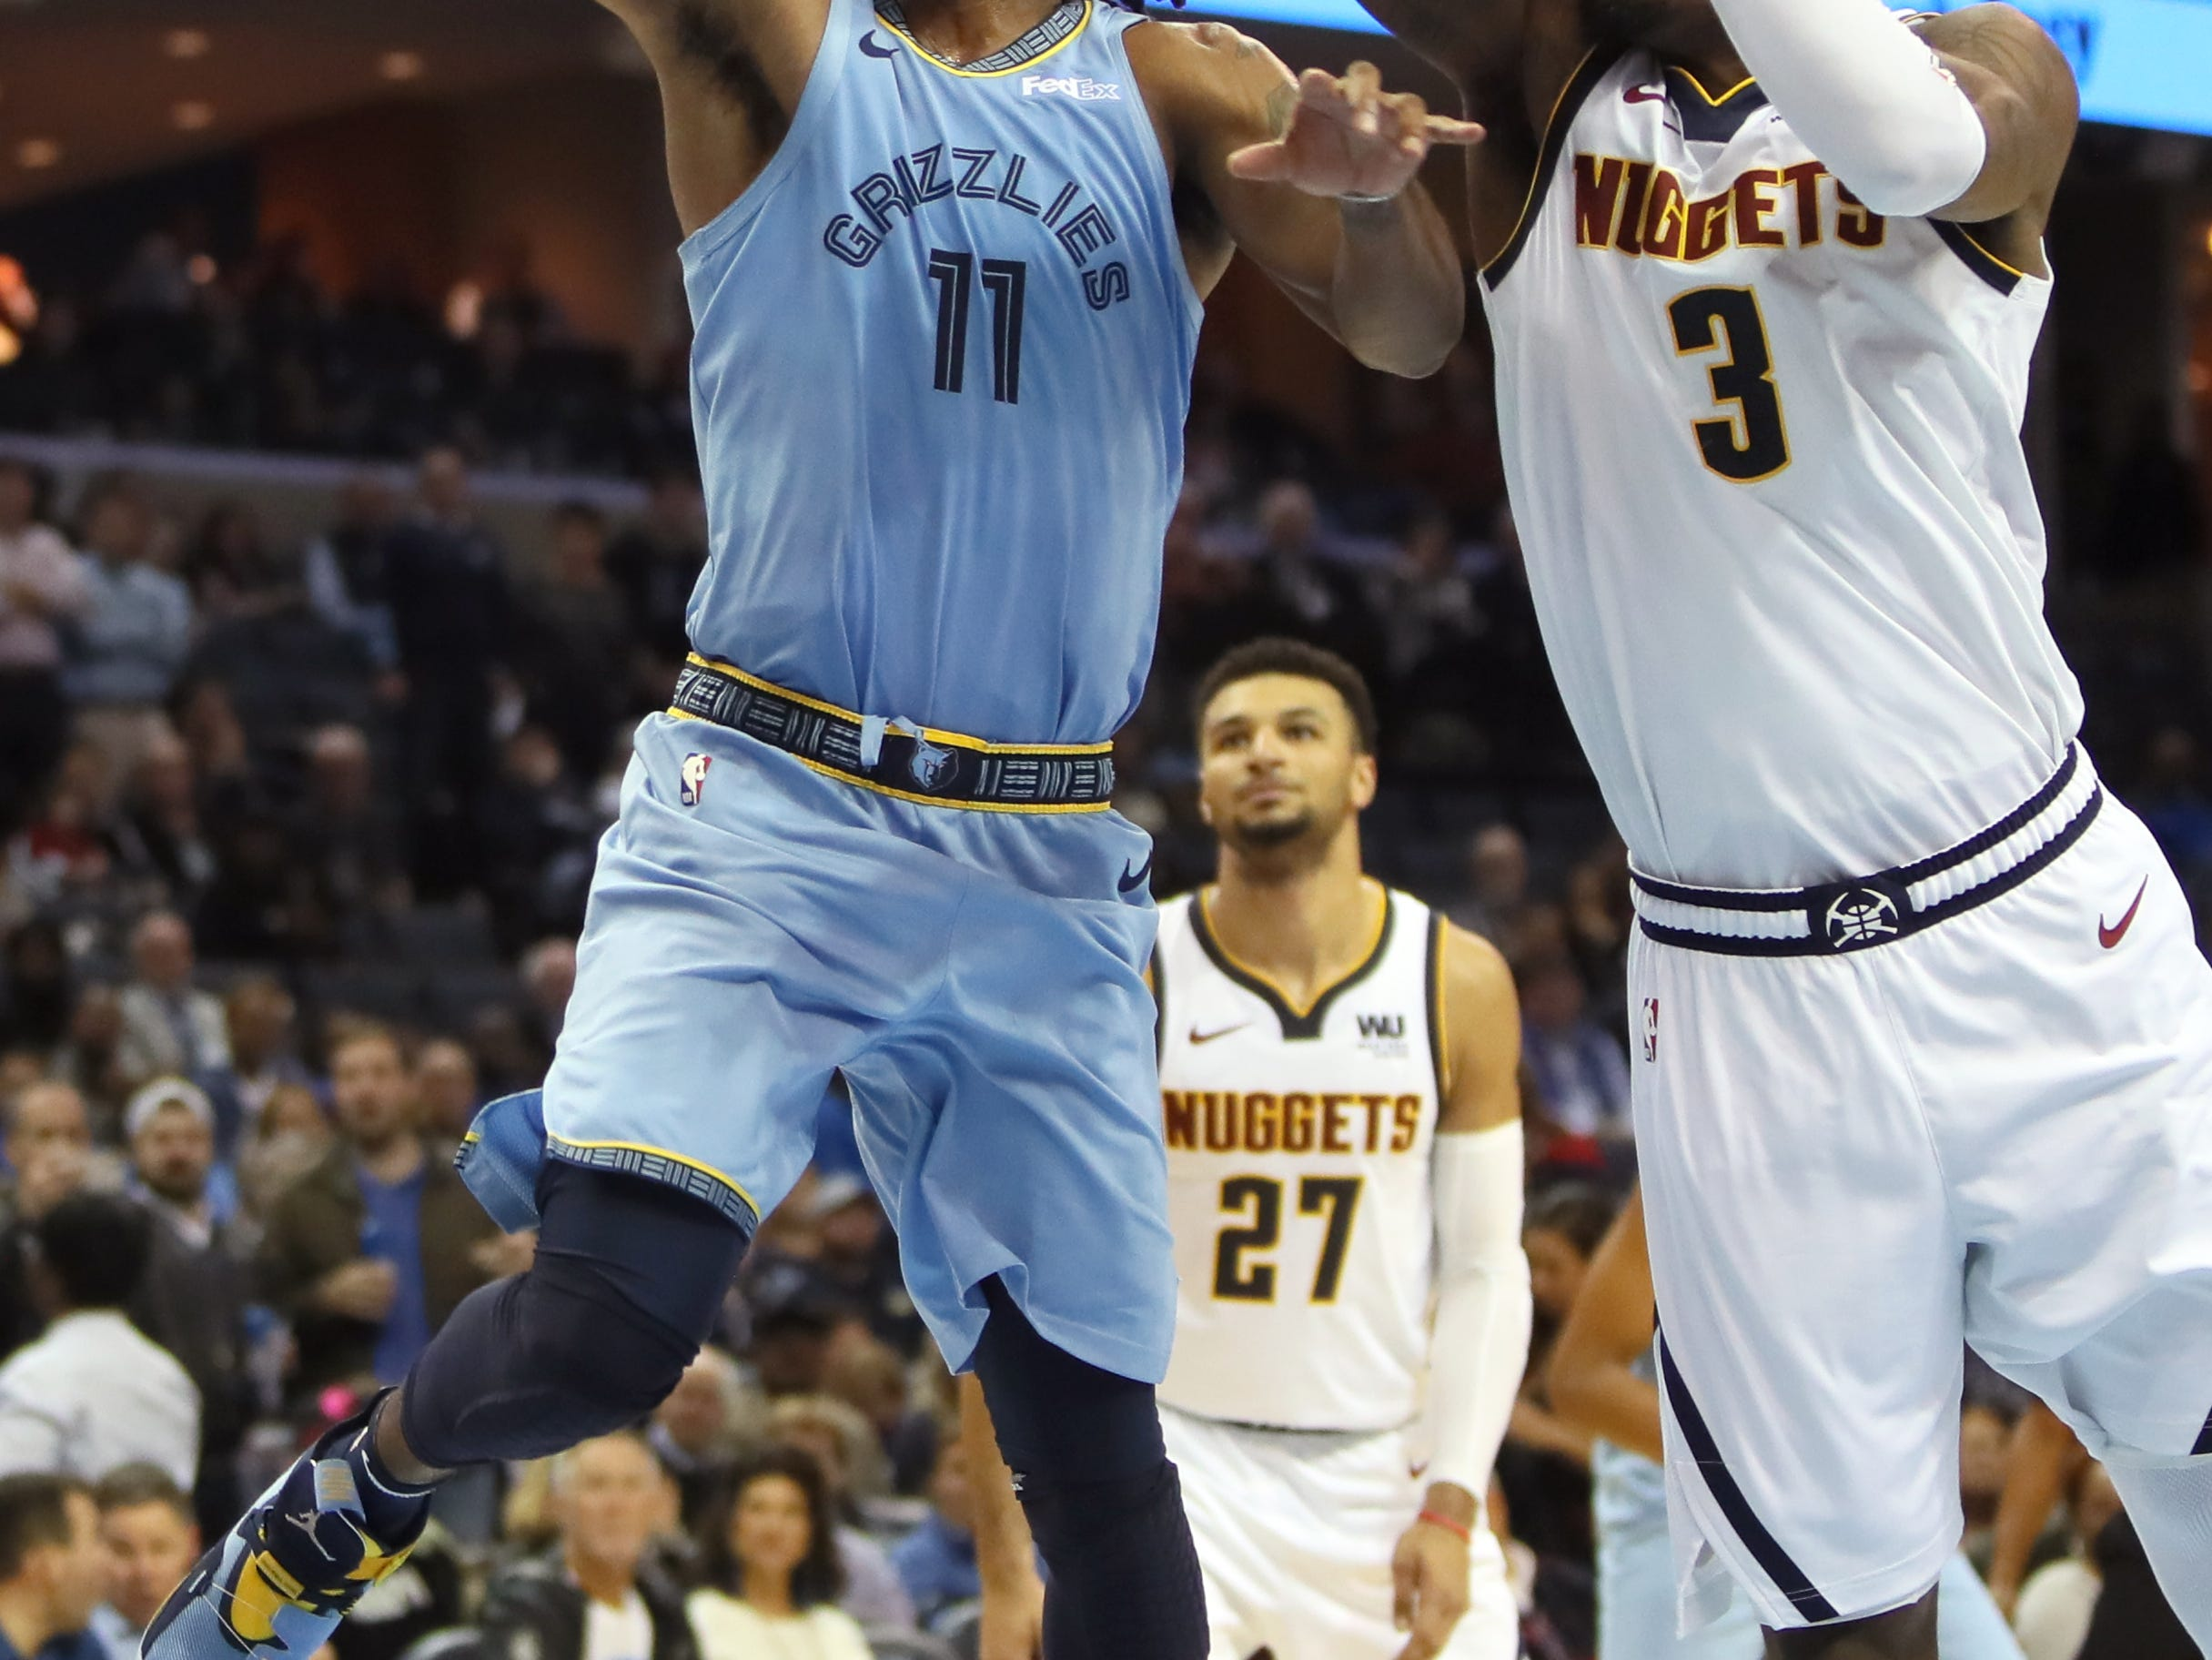 Memphis Grizzlies guard Mike Conley lays the ball up against Denver Nuggets guard Torrey Craig during their game at the FedExForum on Wednesday, November 7, 2018.